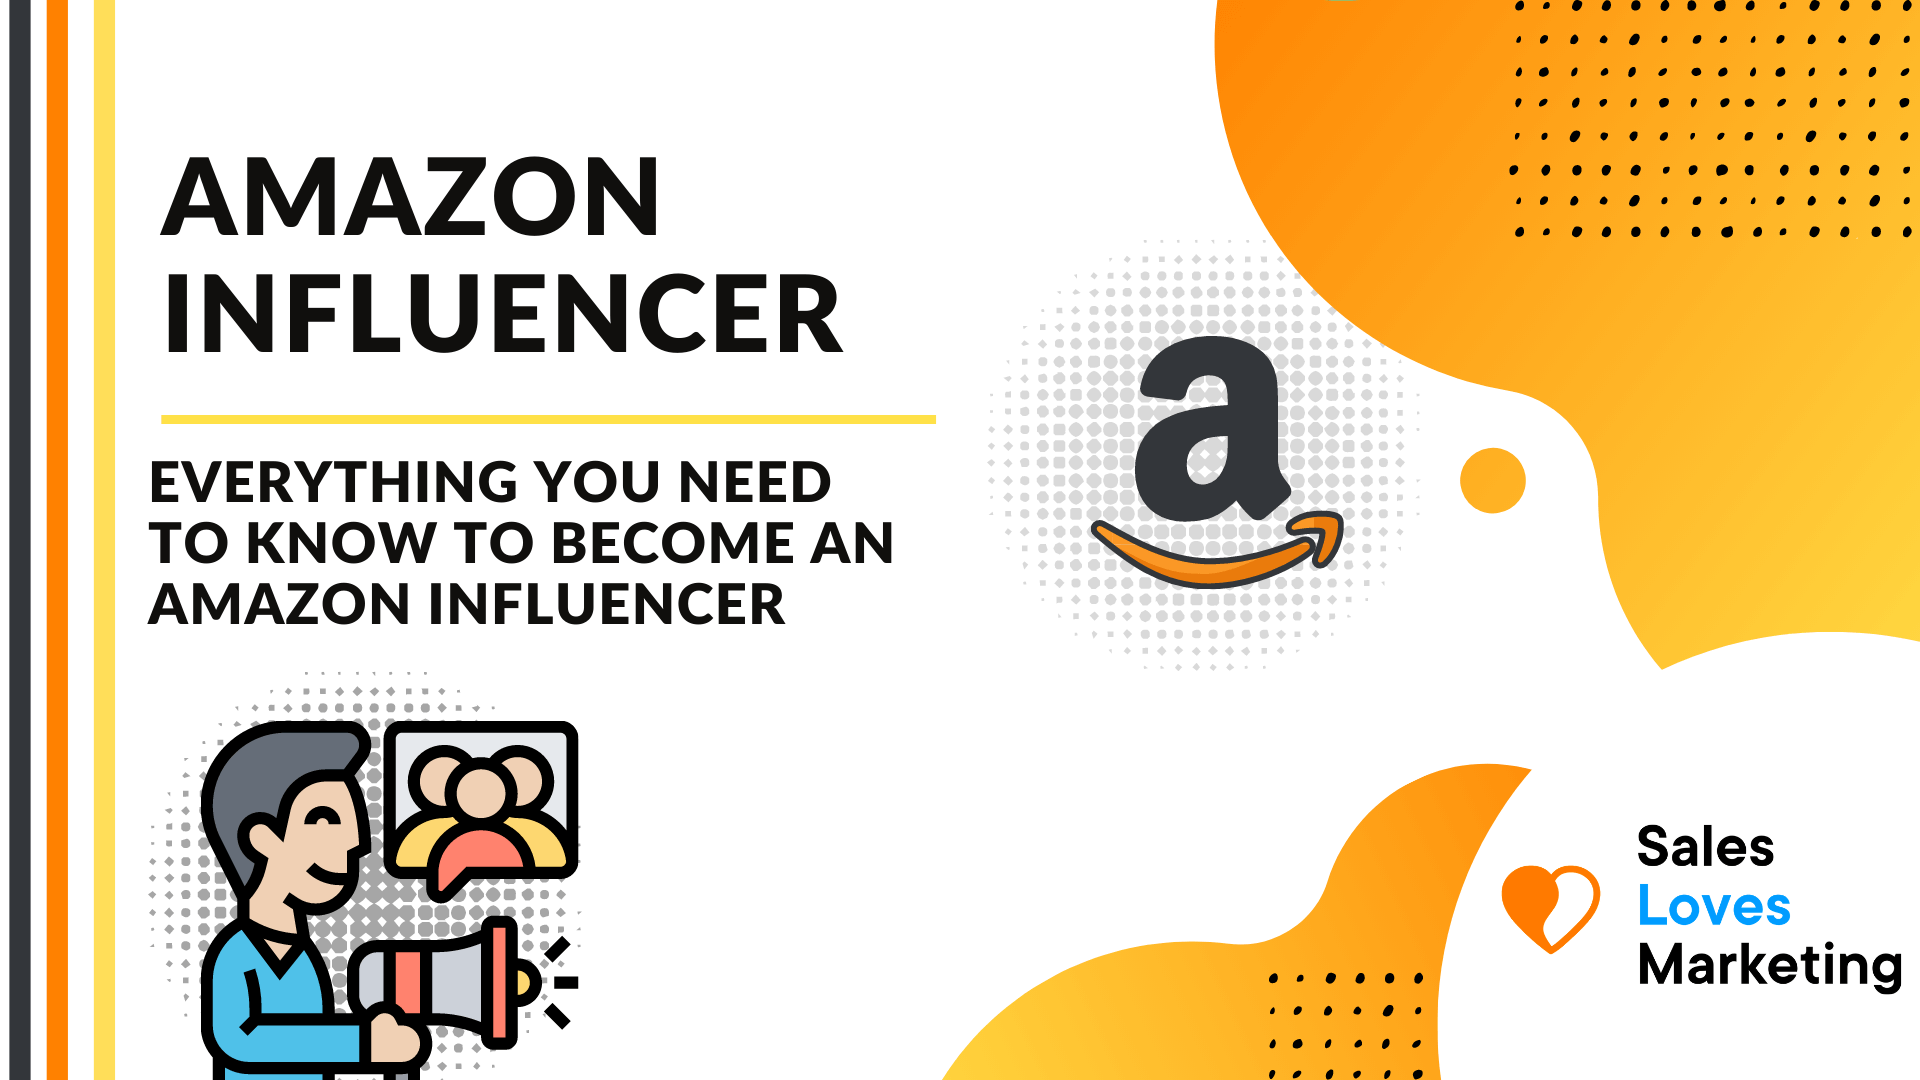 See a a full guide on how to become an Amazon Influencer